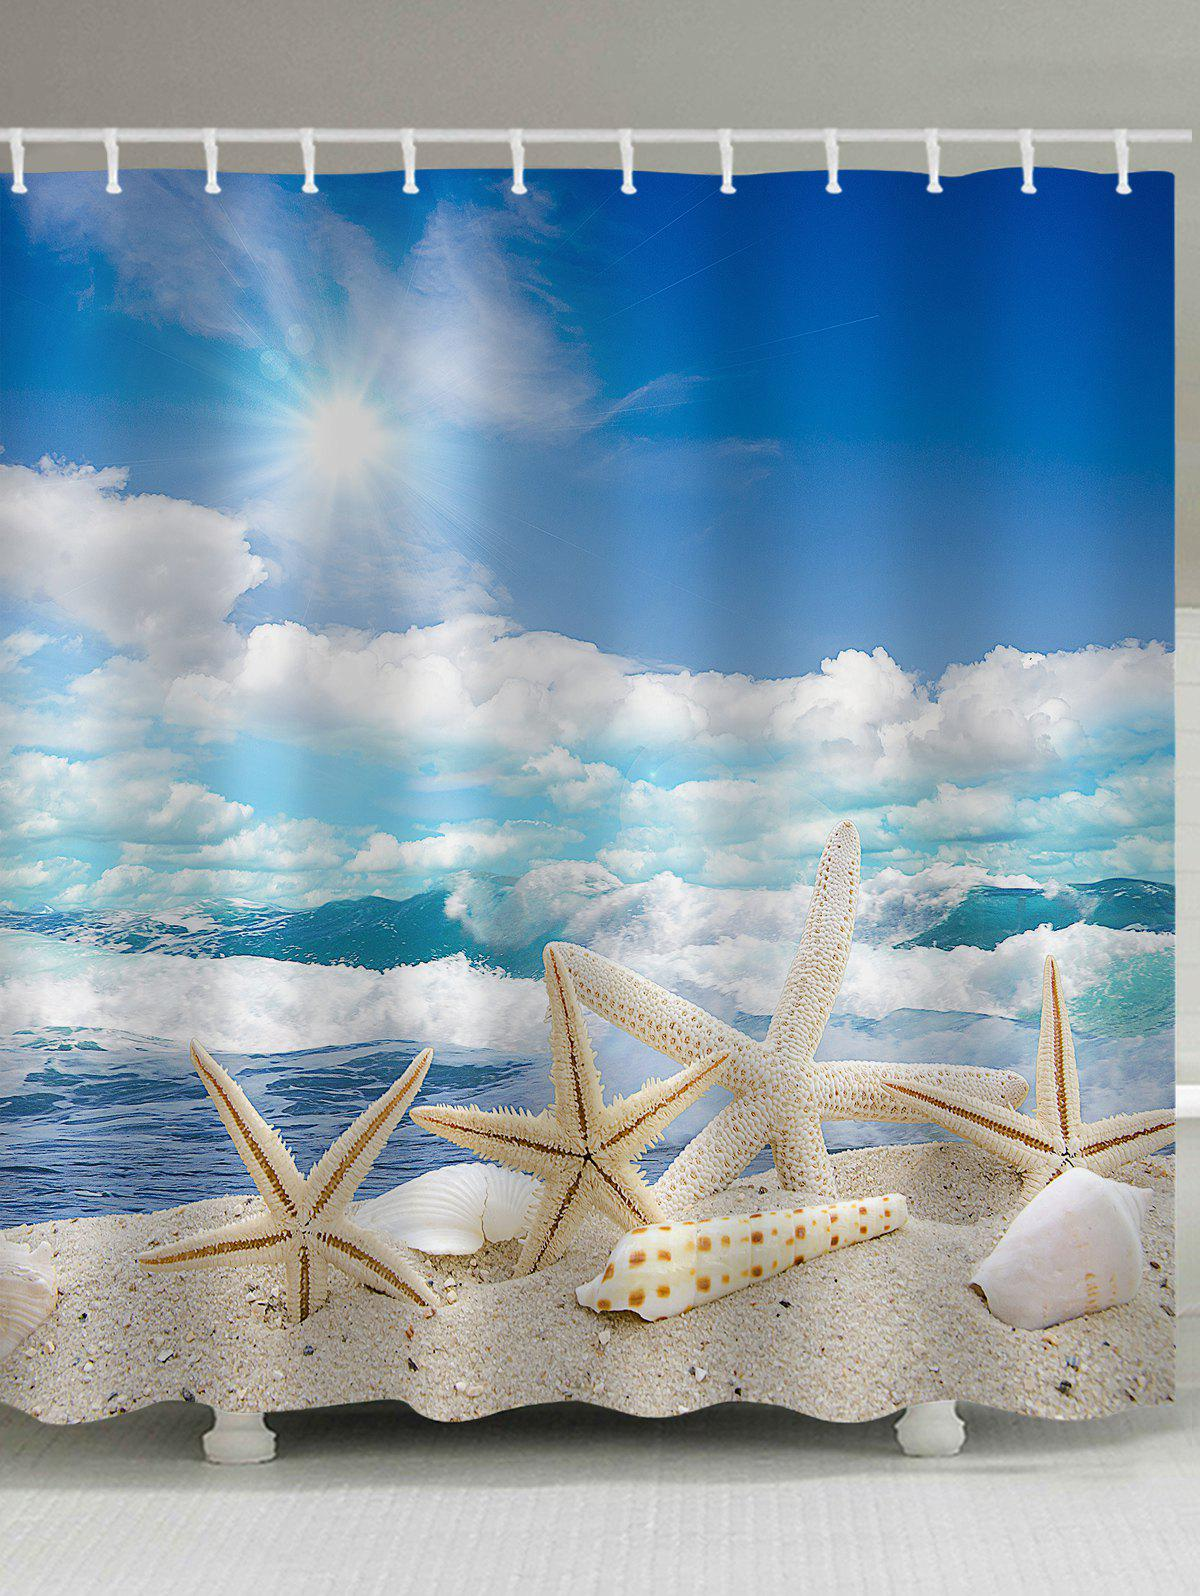 Starfishes Shells Beach Scenery Print Shower Curtain - multicolor W71 INCH * L79 INCH